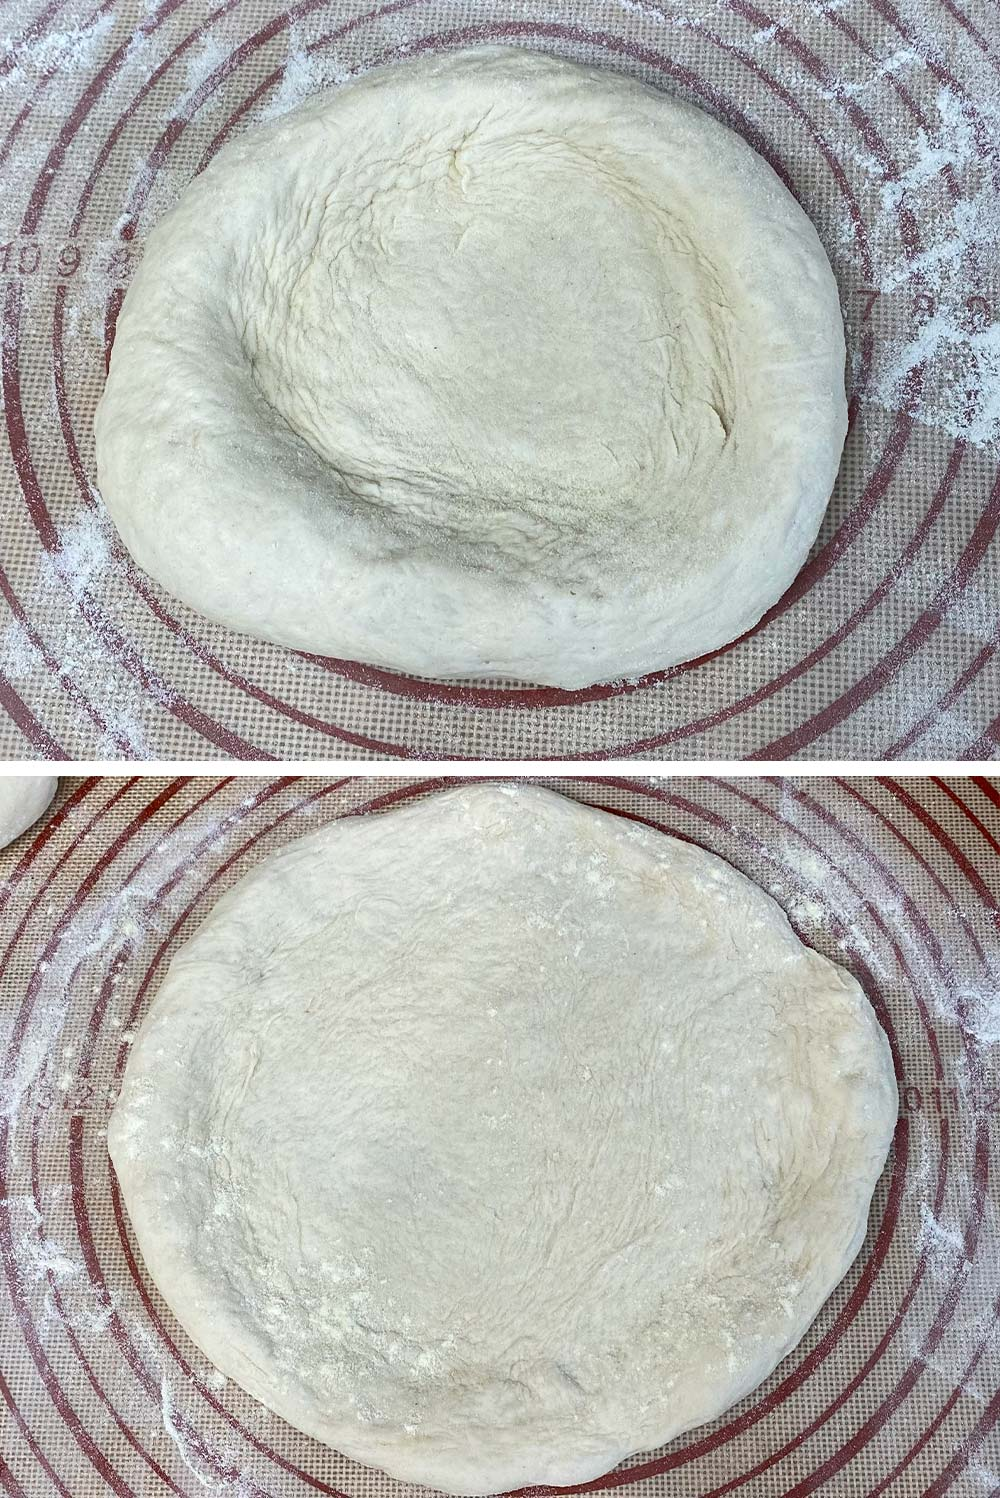 Before and after stretching pizza